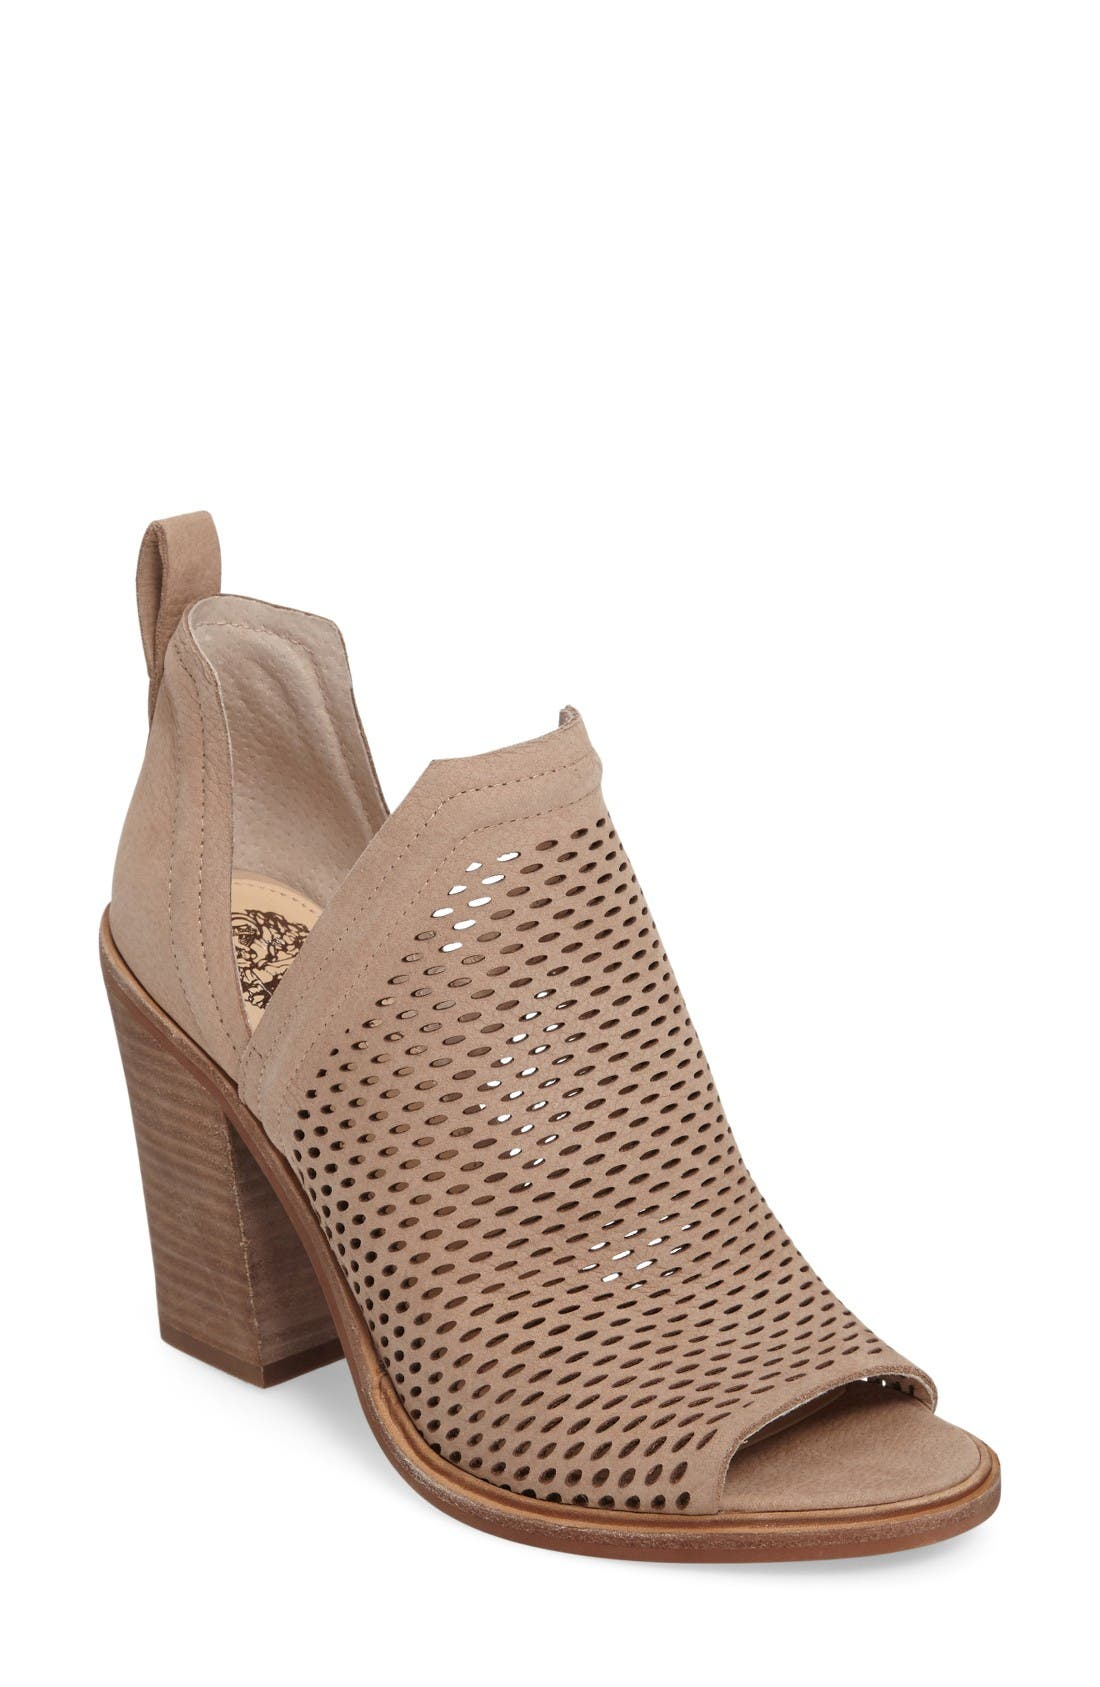 Alternate Image 1 Selected - Vince Camuto Kensa Peep Toe Bootie (Women) (Nordstrom Exclusive)